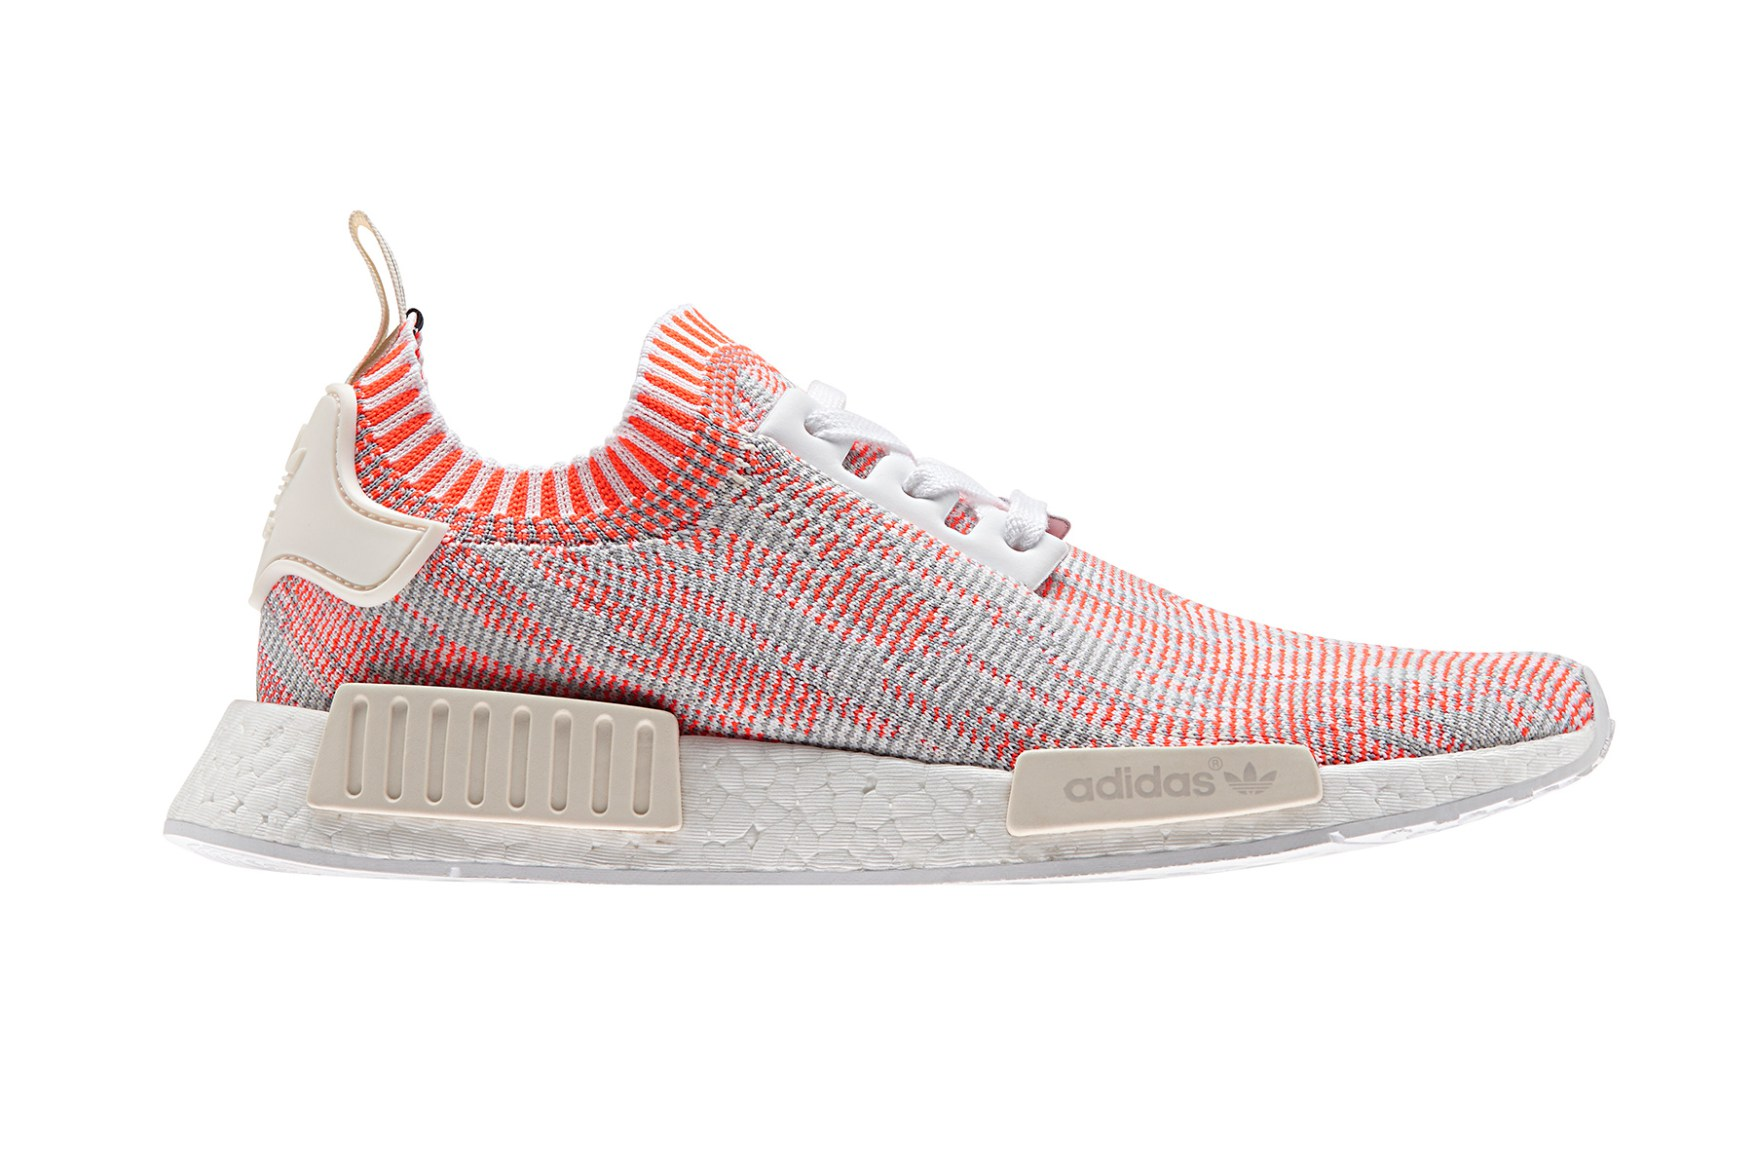 adidas-nmd-r1-camo-pack-3